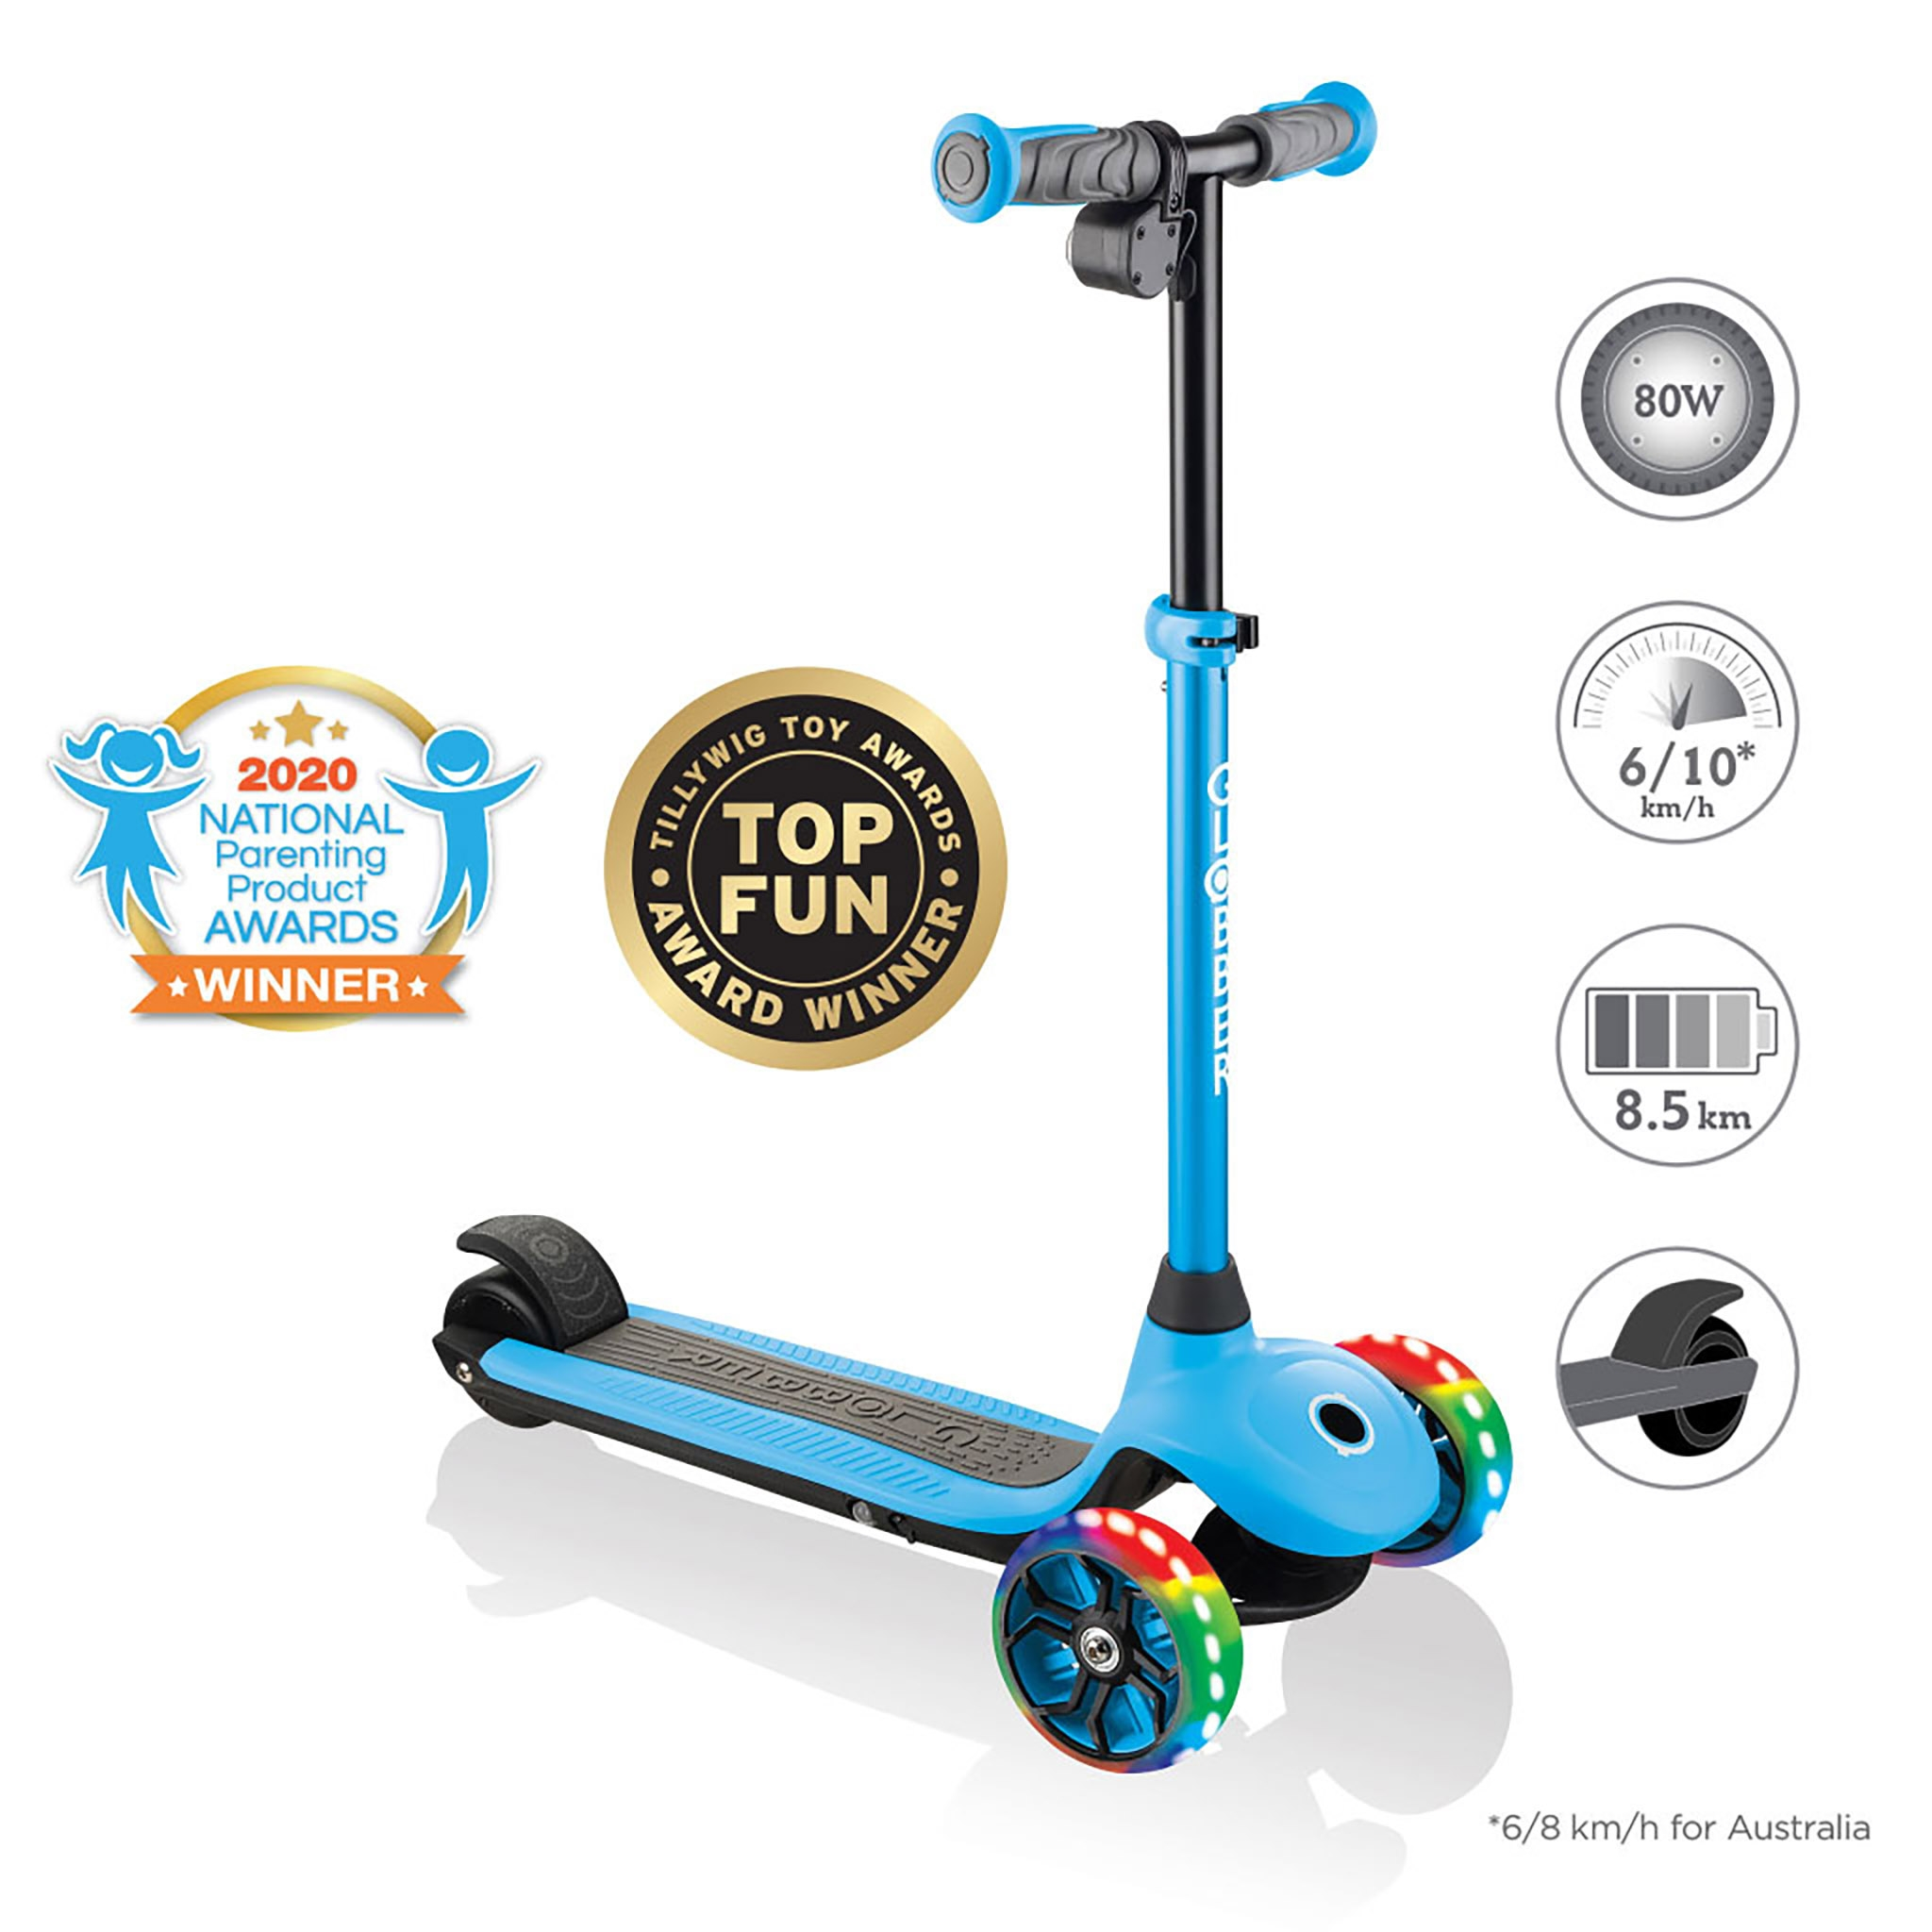 Globber-ONE-K-E-MOTION-4-award-winning-3-wheel-electric-scooter-for-boys-and-girls-with-80W-hub-motor 0